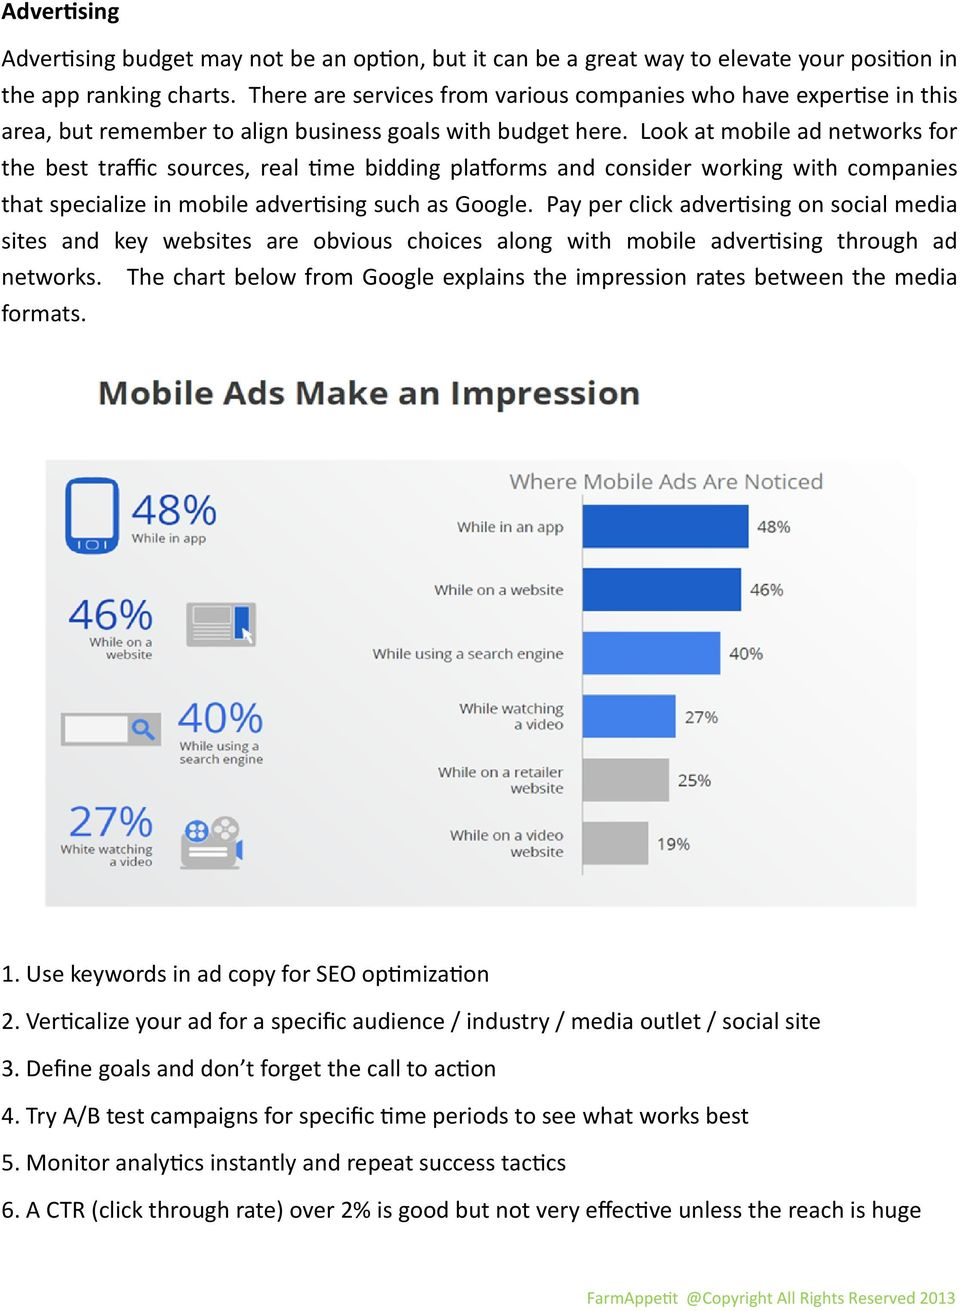 Look at mobile ad networks for the best traffic sources, real me bidding pla orms and consider working with companies that specialize in mobile adver sing such as Google.